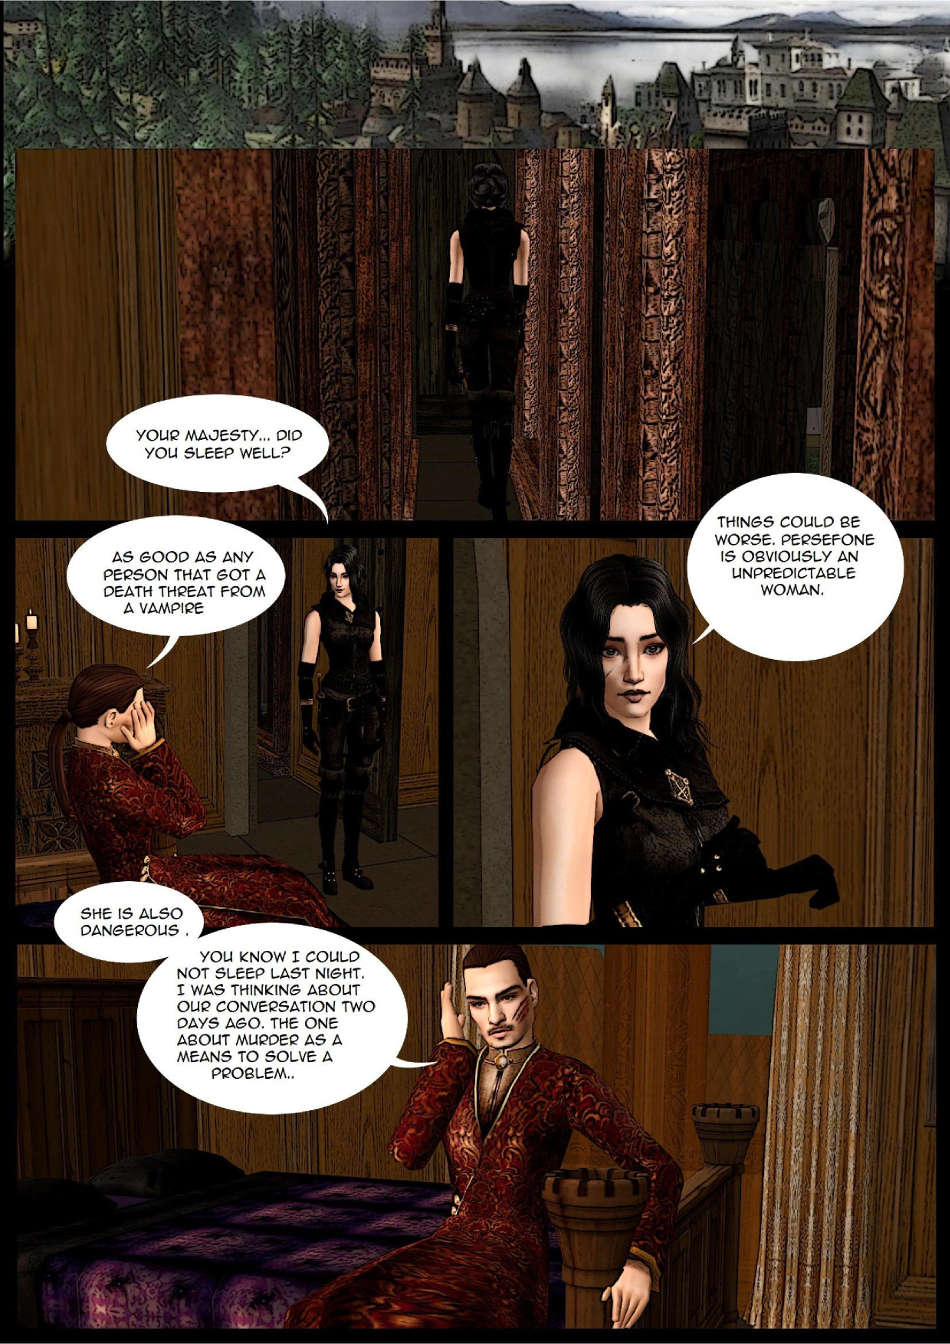 The throne room p.27